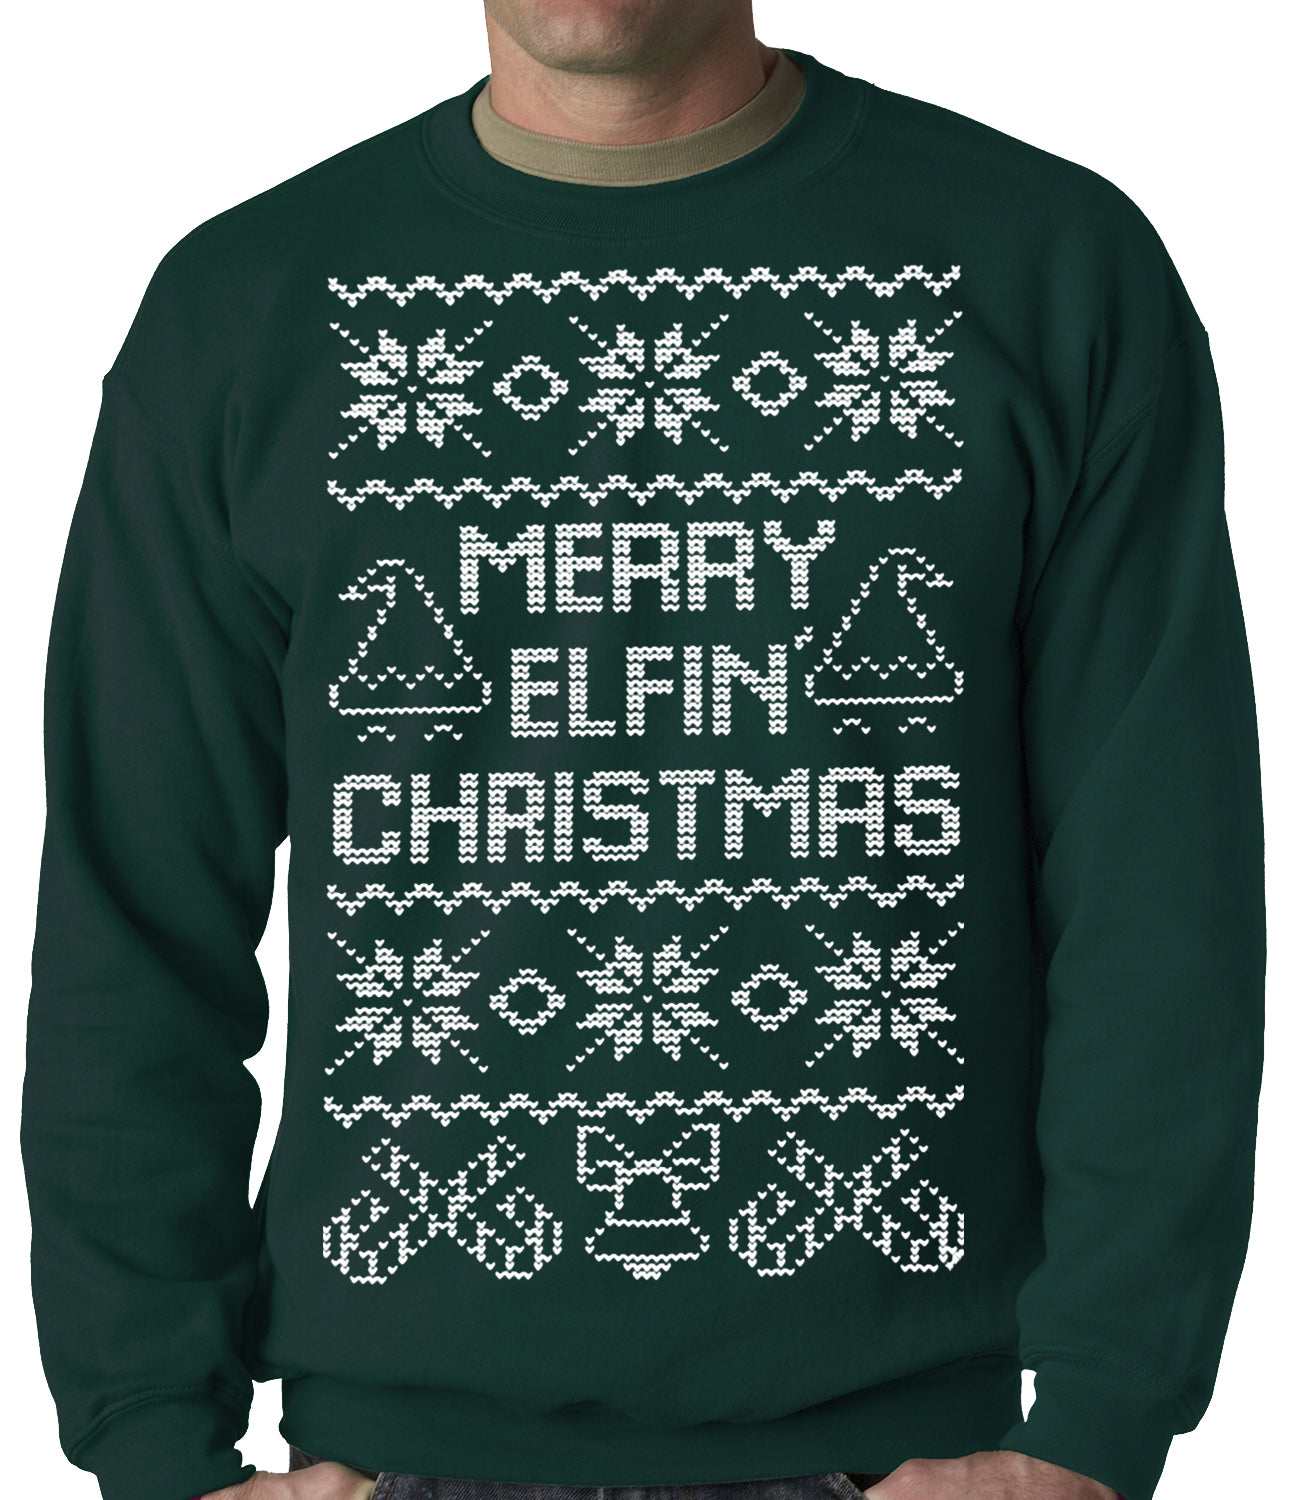 Funny Ugly Christmas Sweater.Ugly Christmas Sweater Merry Elfin Christmas Funny Ugly Christmas Adult Crewneck